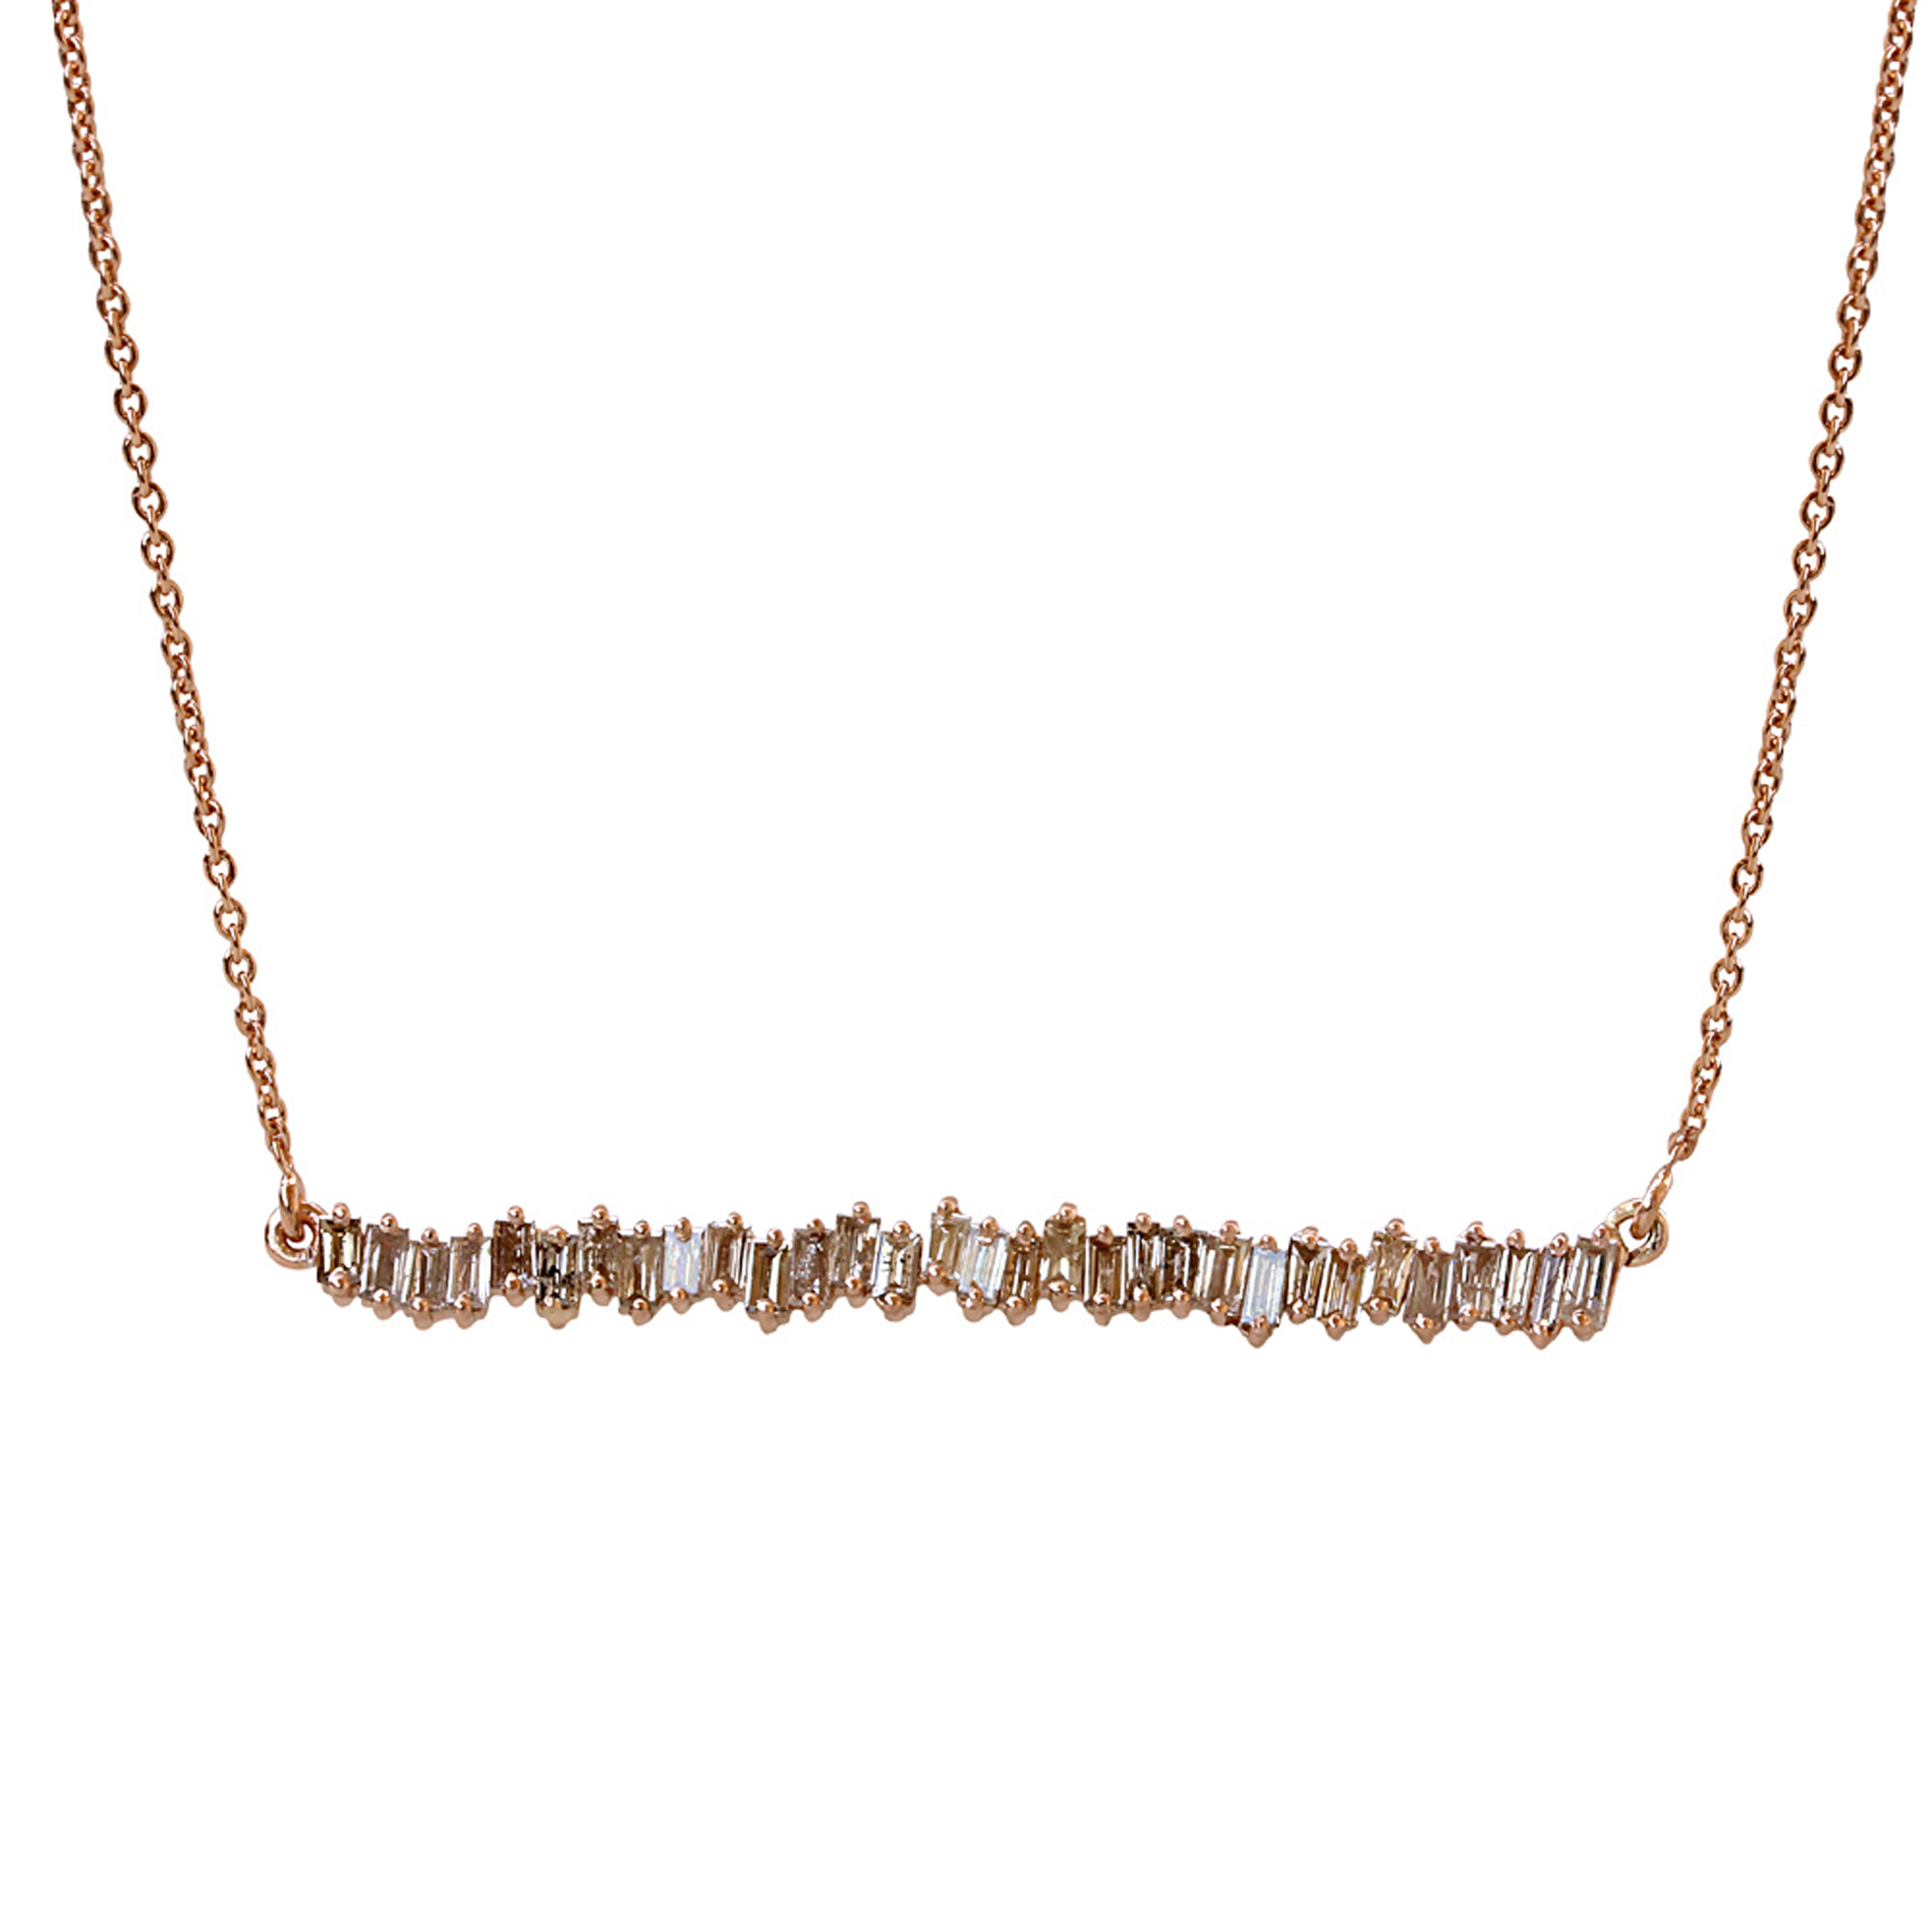 Baguette diamond 18k solid gold necklace with chain